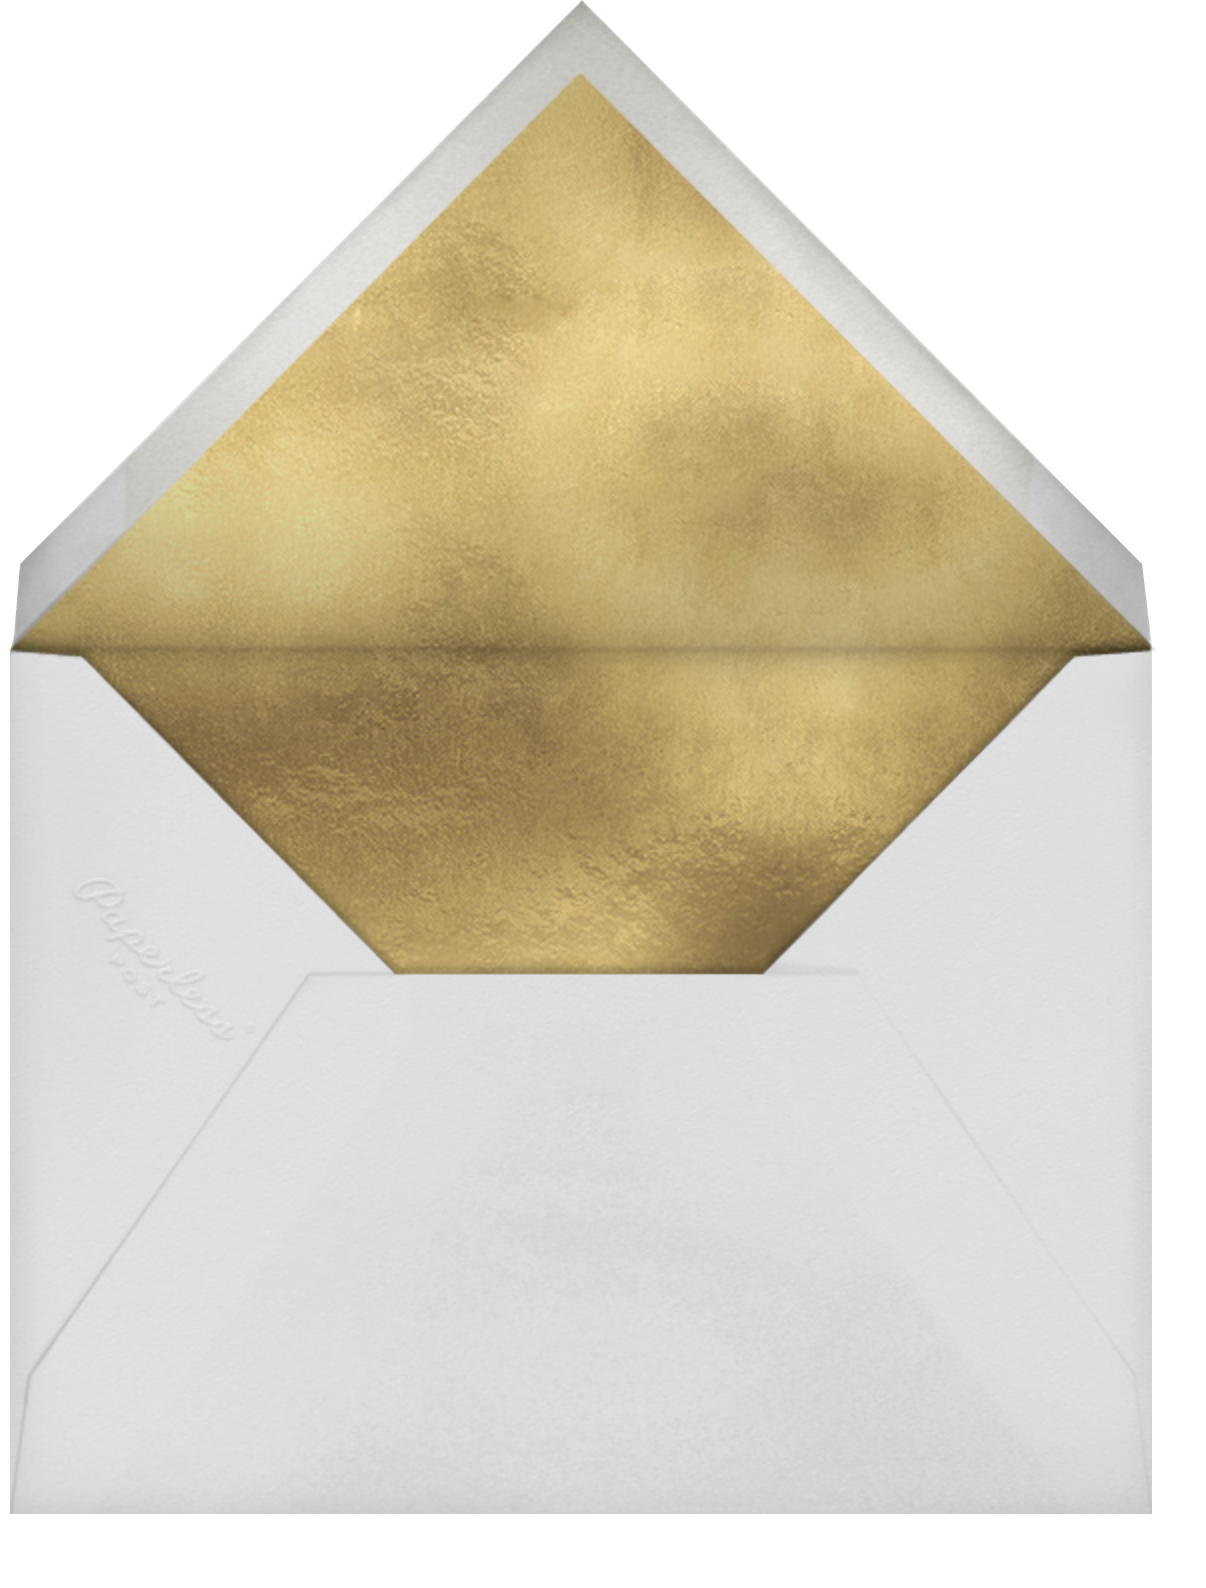 Wildwood (Invitation) - Rifle Paper Co. - General entertaining - envelope back